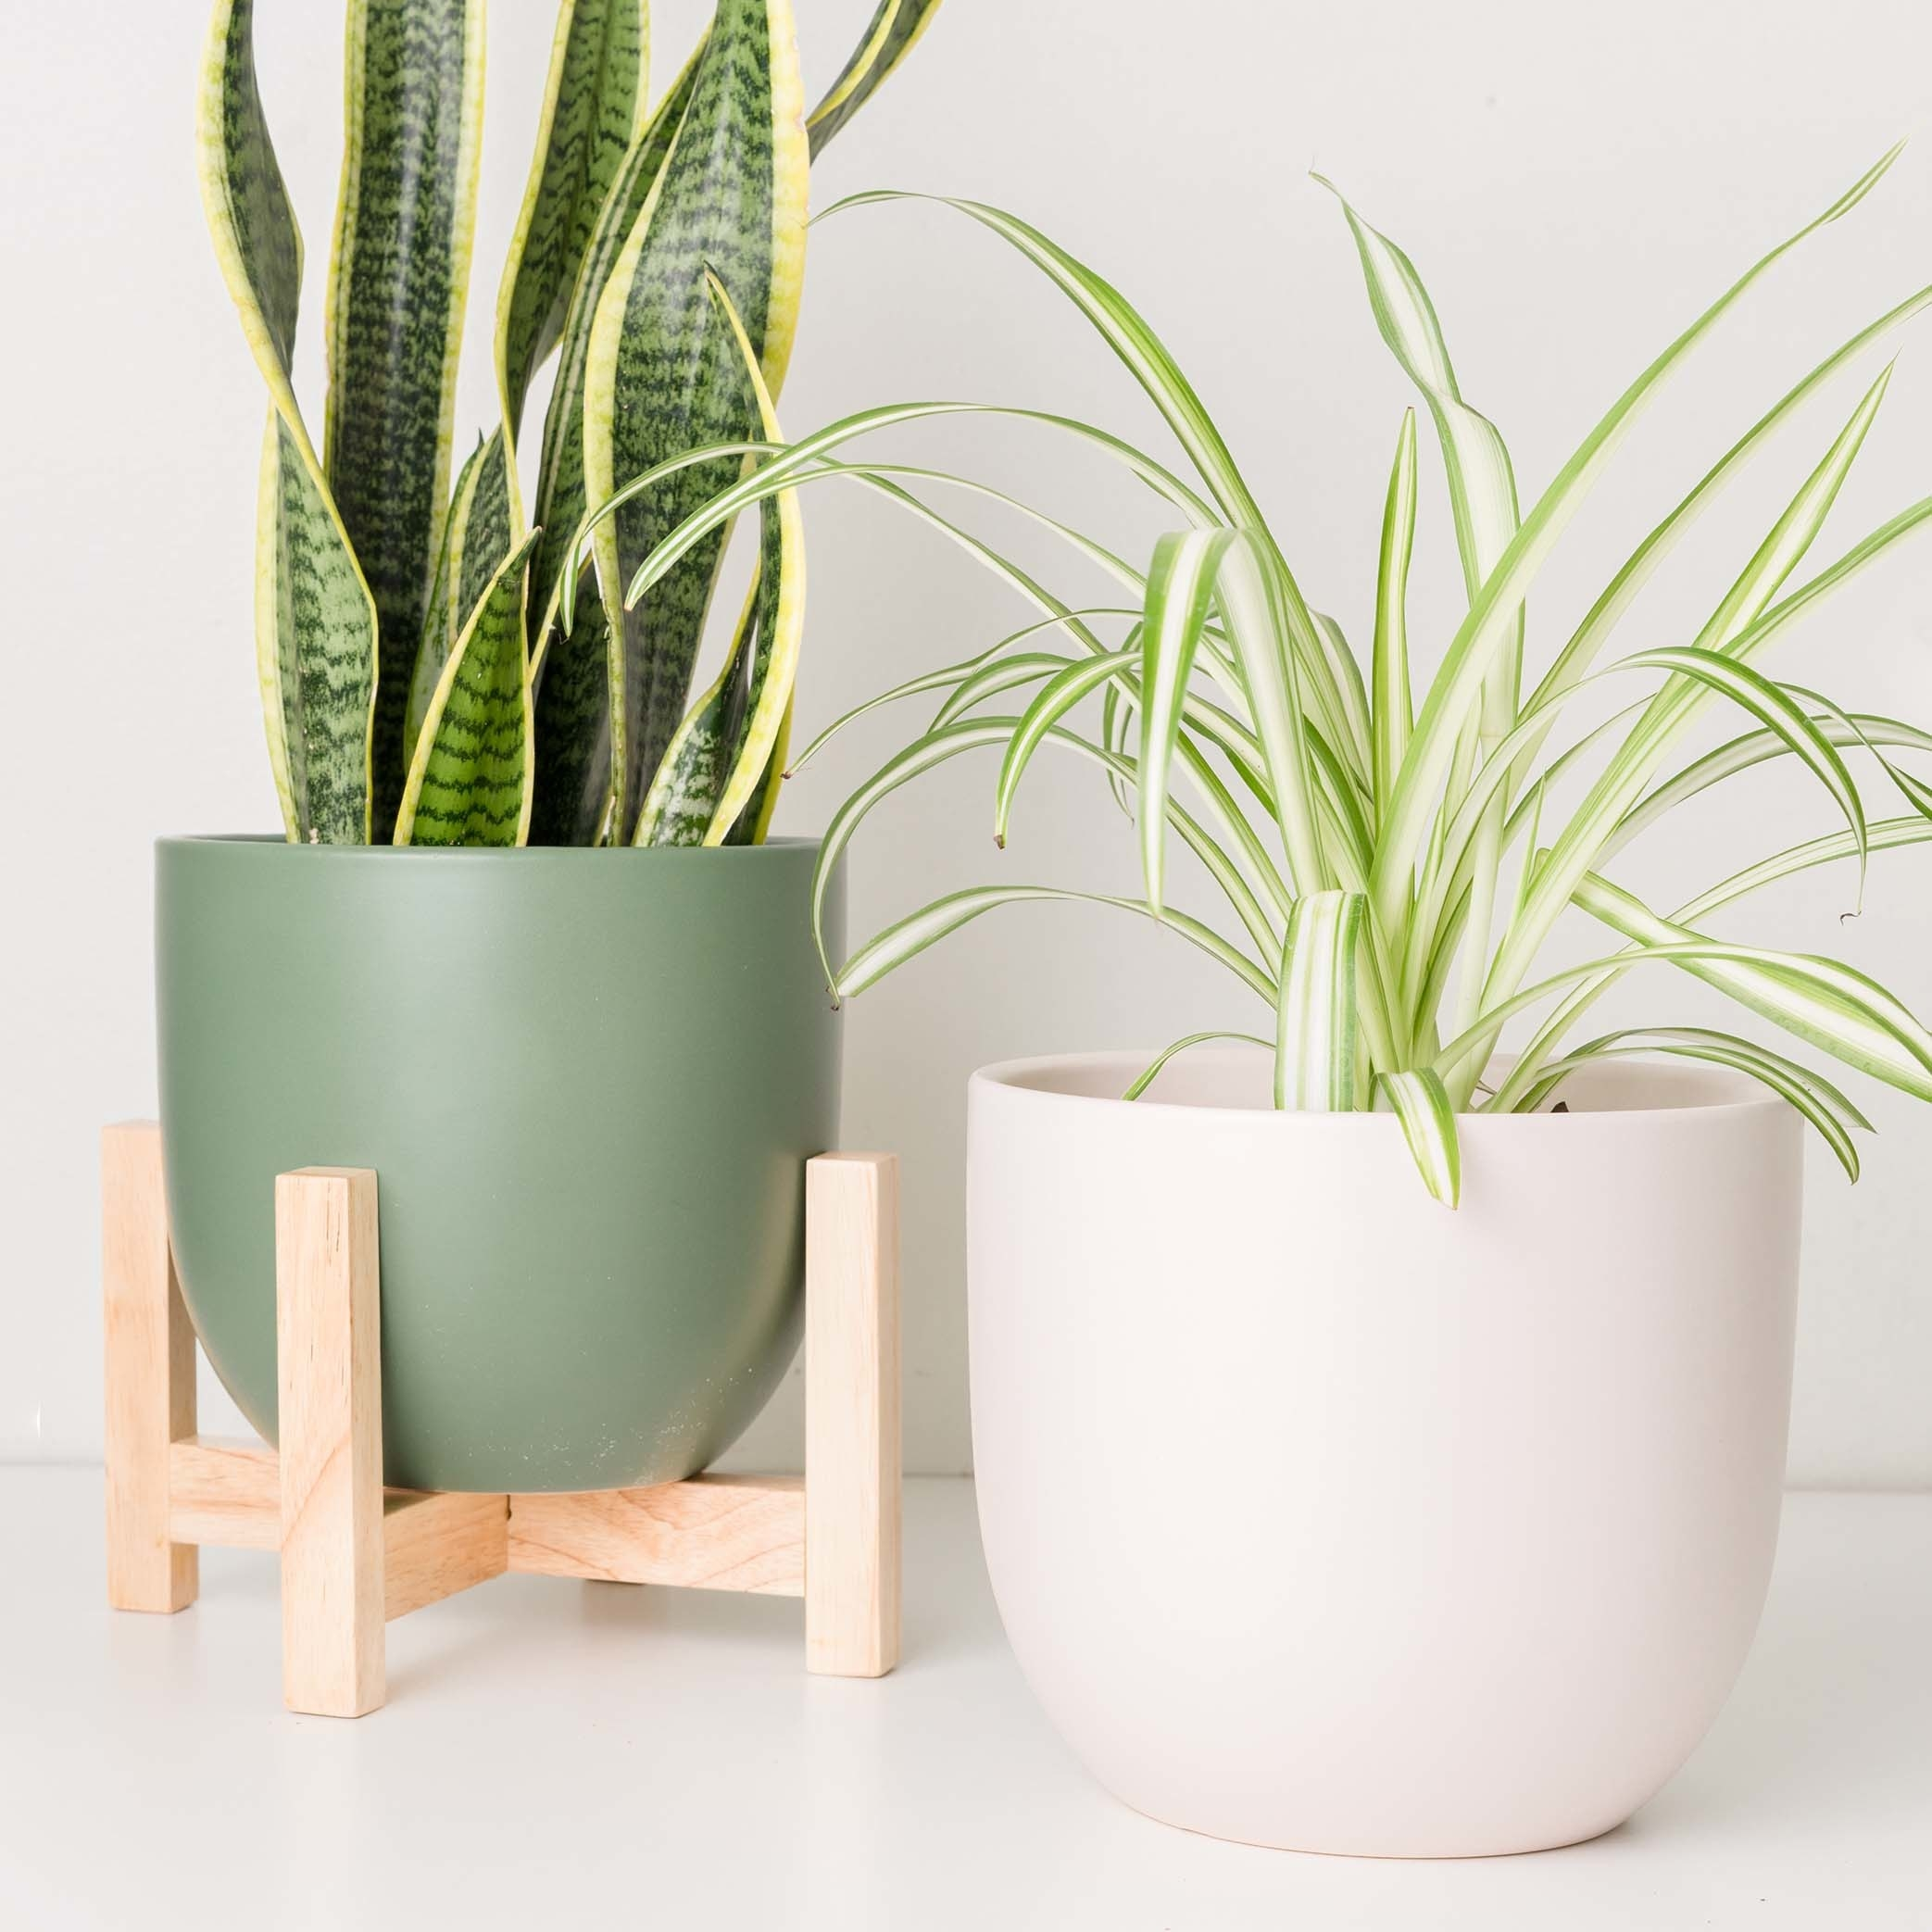 The pots, which are egg-shaped, with rounded edges, in pink and green